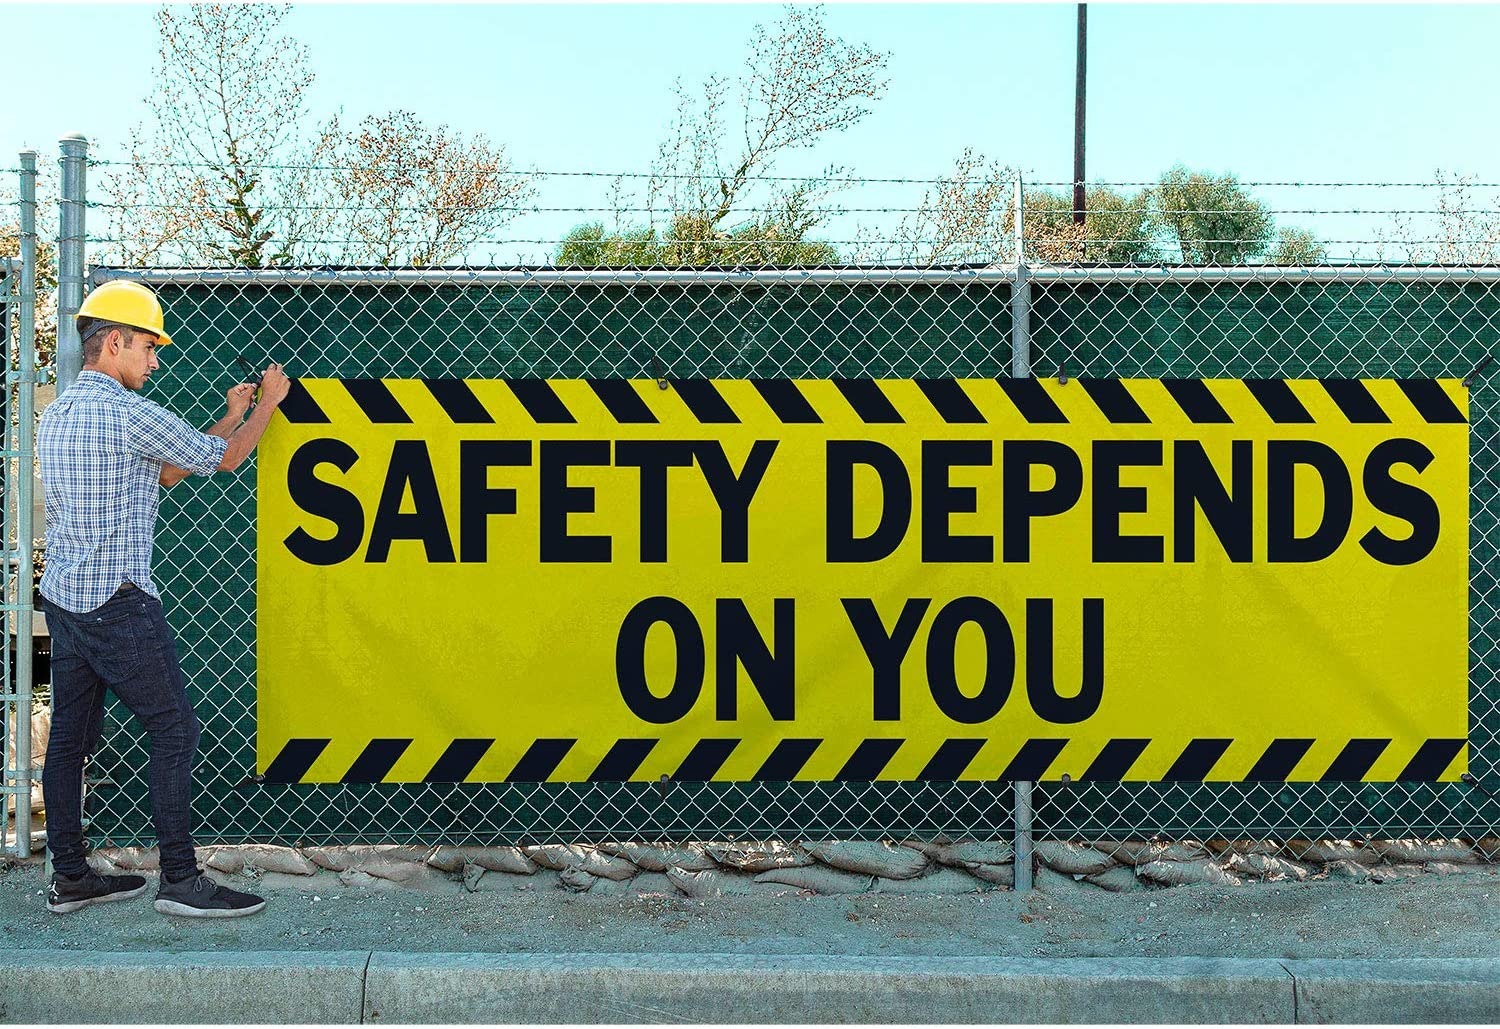 Safety Depends On You Vinyl Banner-Mesh Wind Resistant 4X12 Foot-Orange Includes Zip Ties HALF PRICE BANNERS Easy Hang-Made in USA